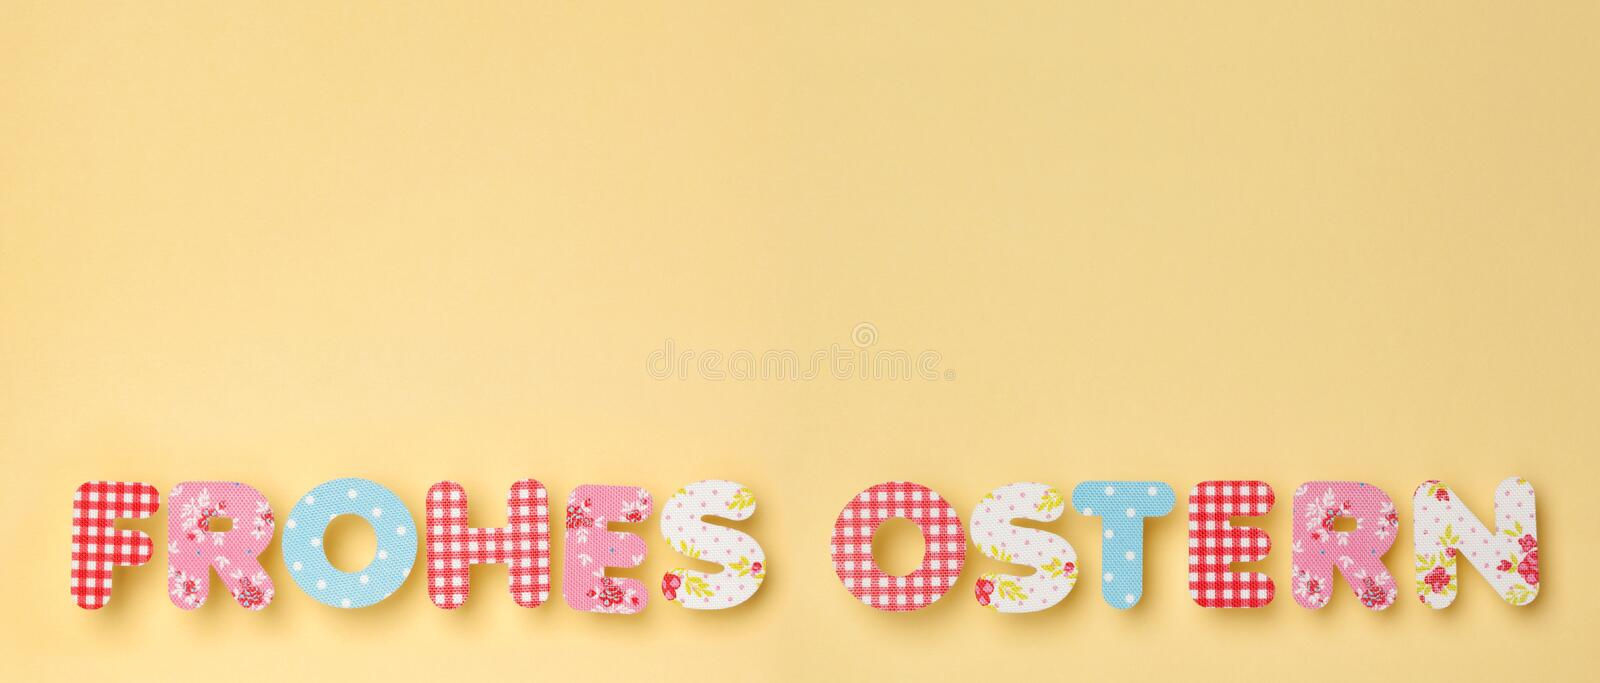 Cute Letters on Yellow - German: Frohes Ostern: Happy Easter, wi royalty free stock photography